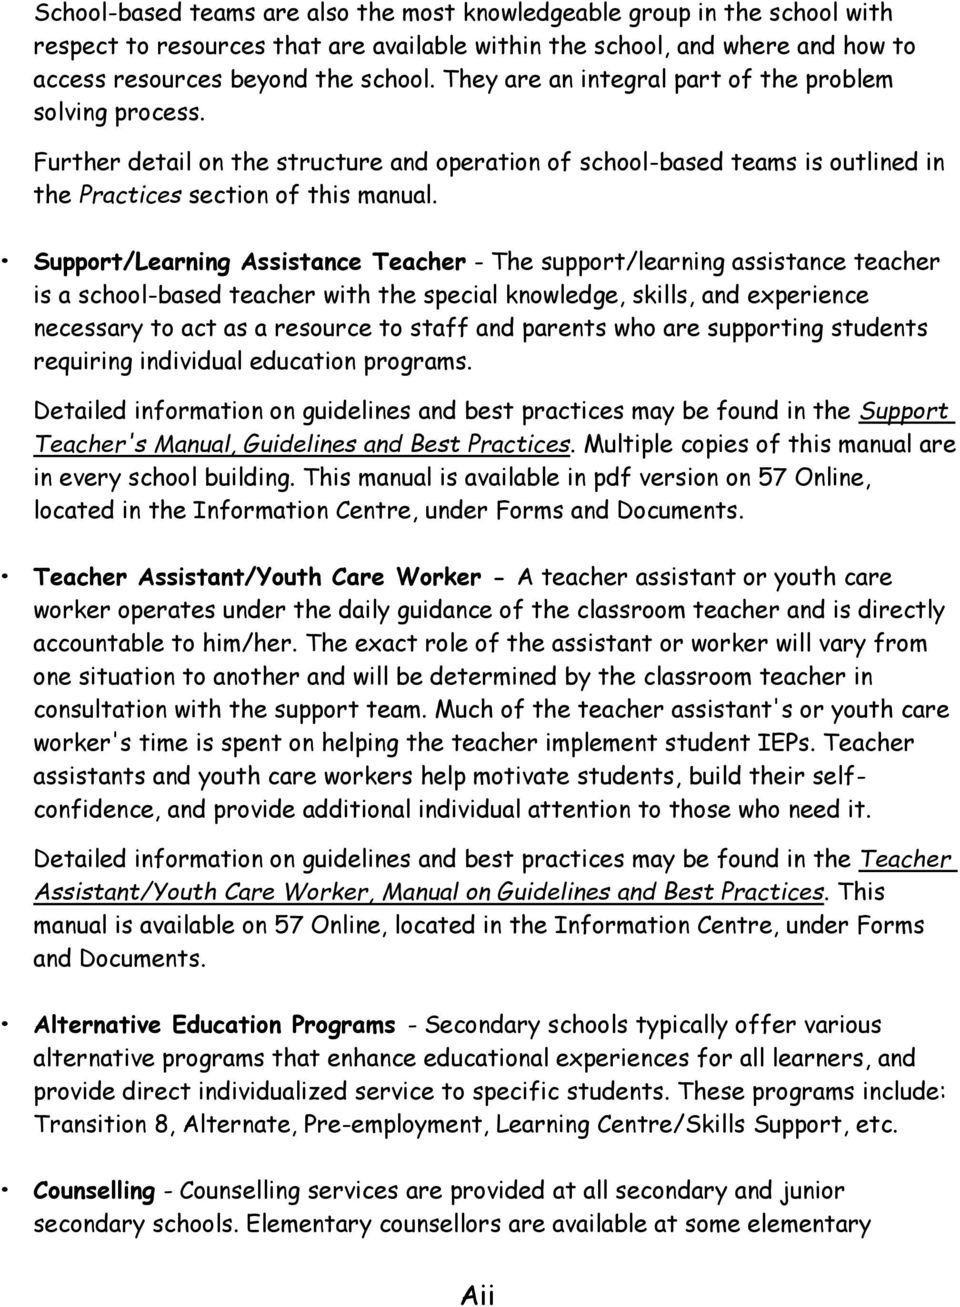 Support/Learning Assistance Teacher - The support/learning assistance teacher is a school-based teacher with the special knowledge, skills, and experience necessary to act as a resource to staff and